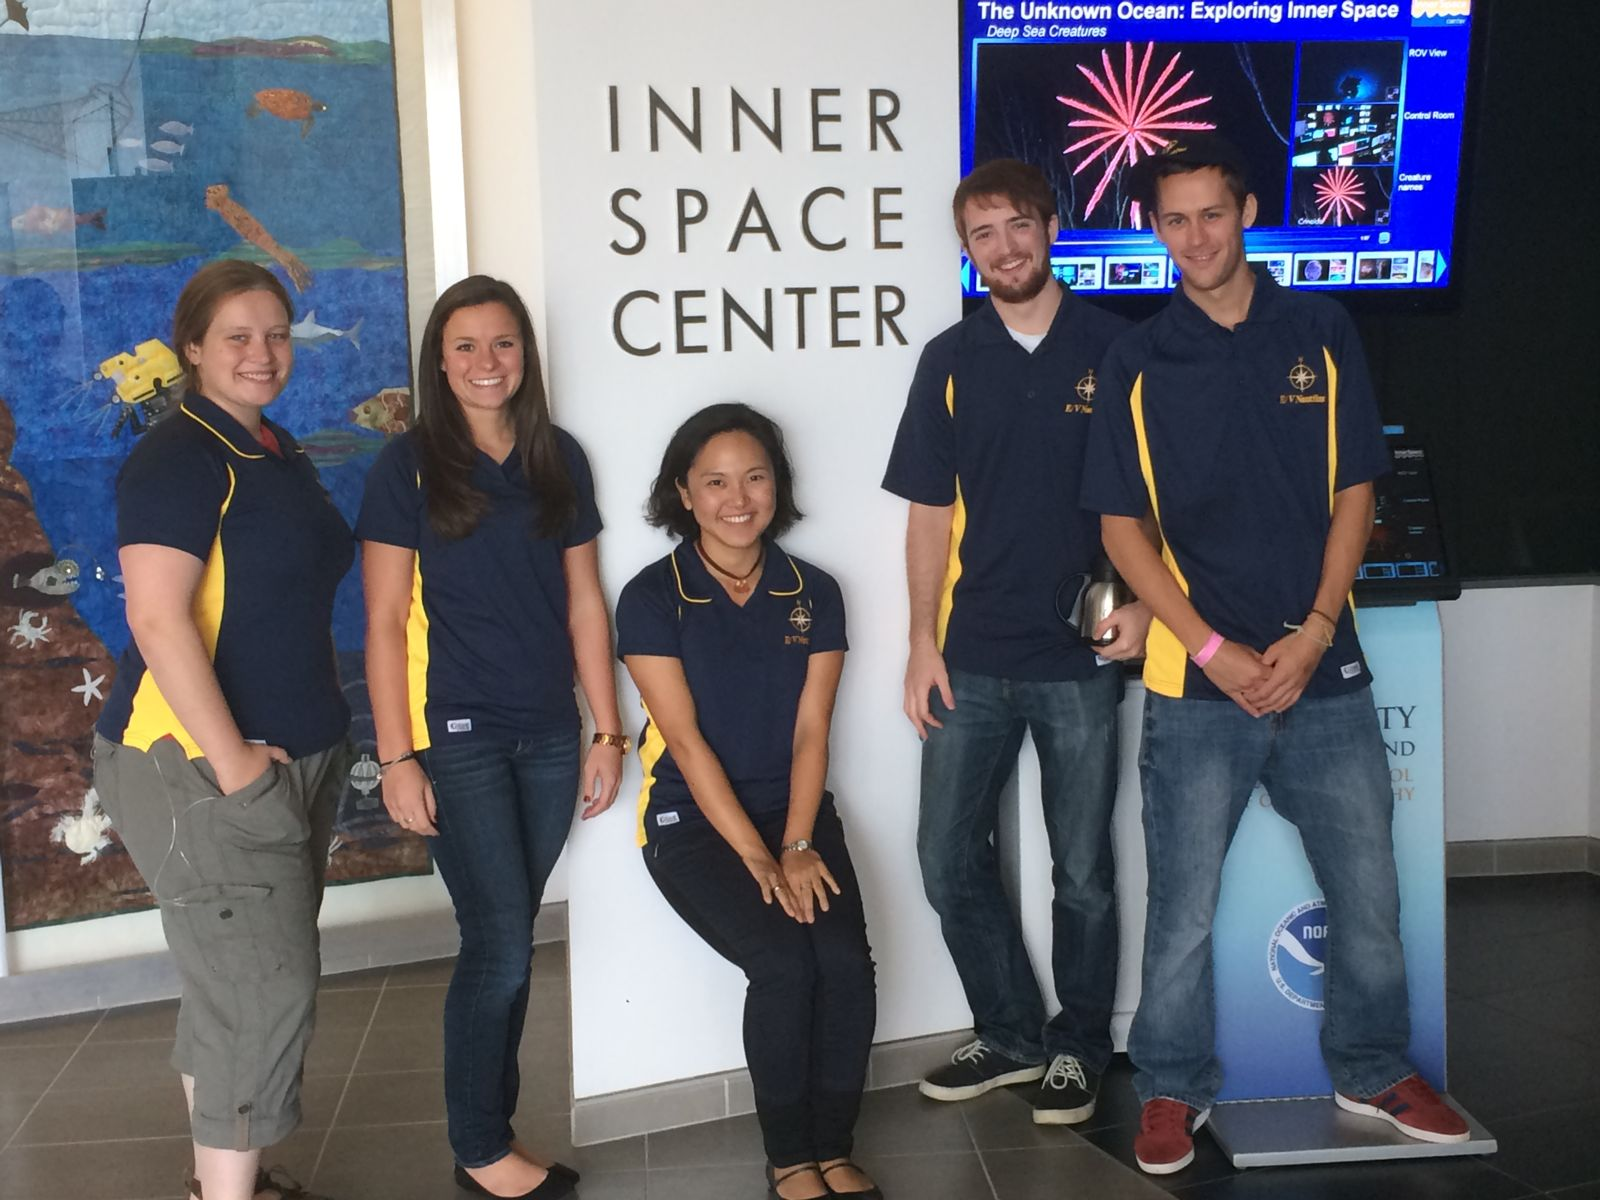 GLG students at Inner Space Center